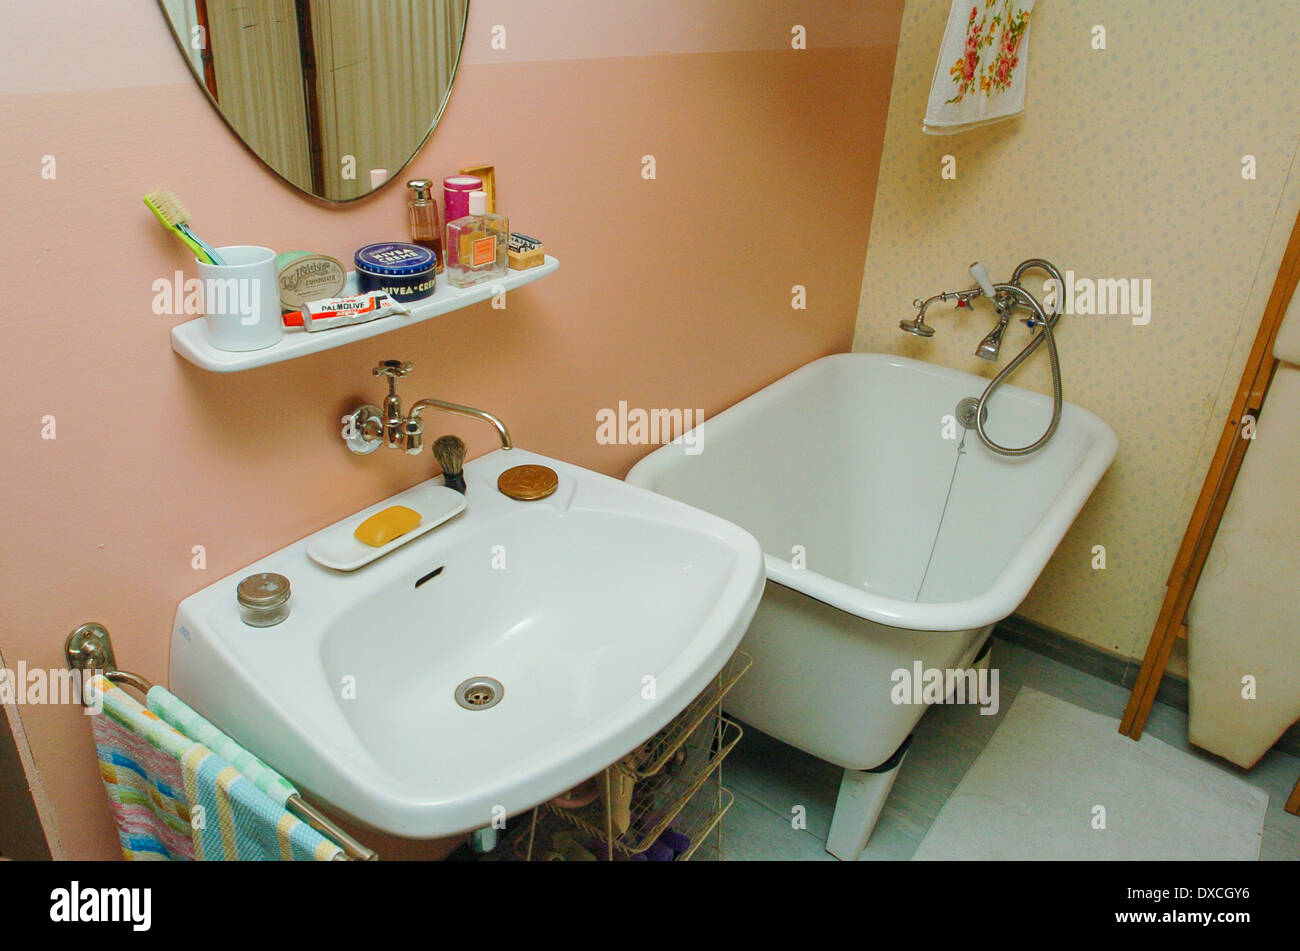 Apartment In 50s Style Stock Photos & Apartment In 50s Style Stock ...